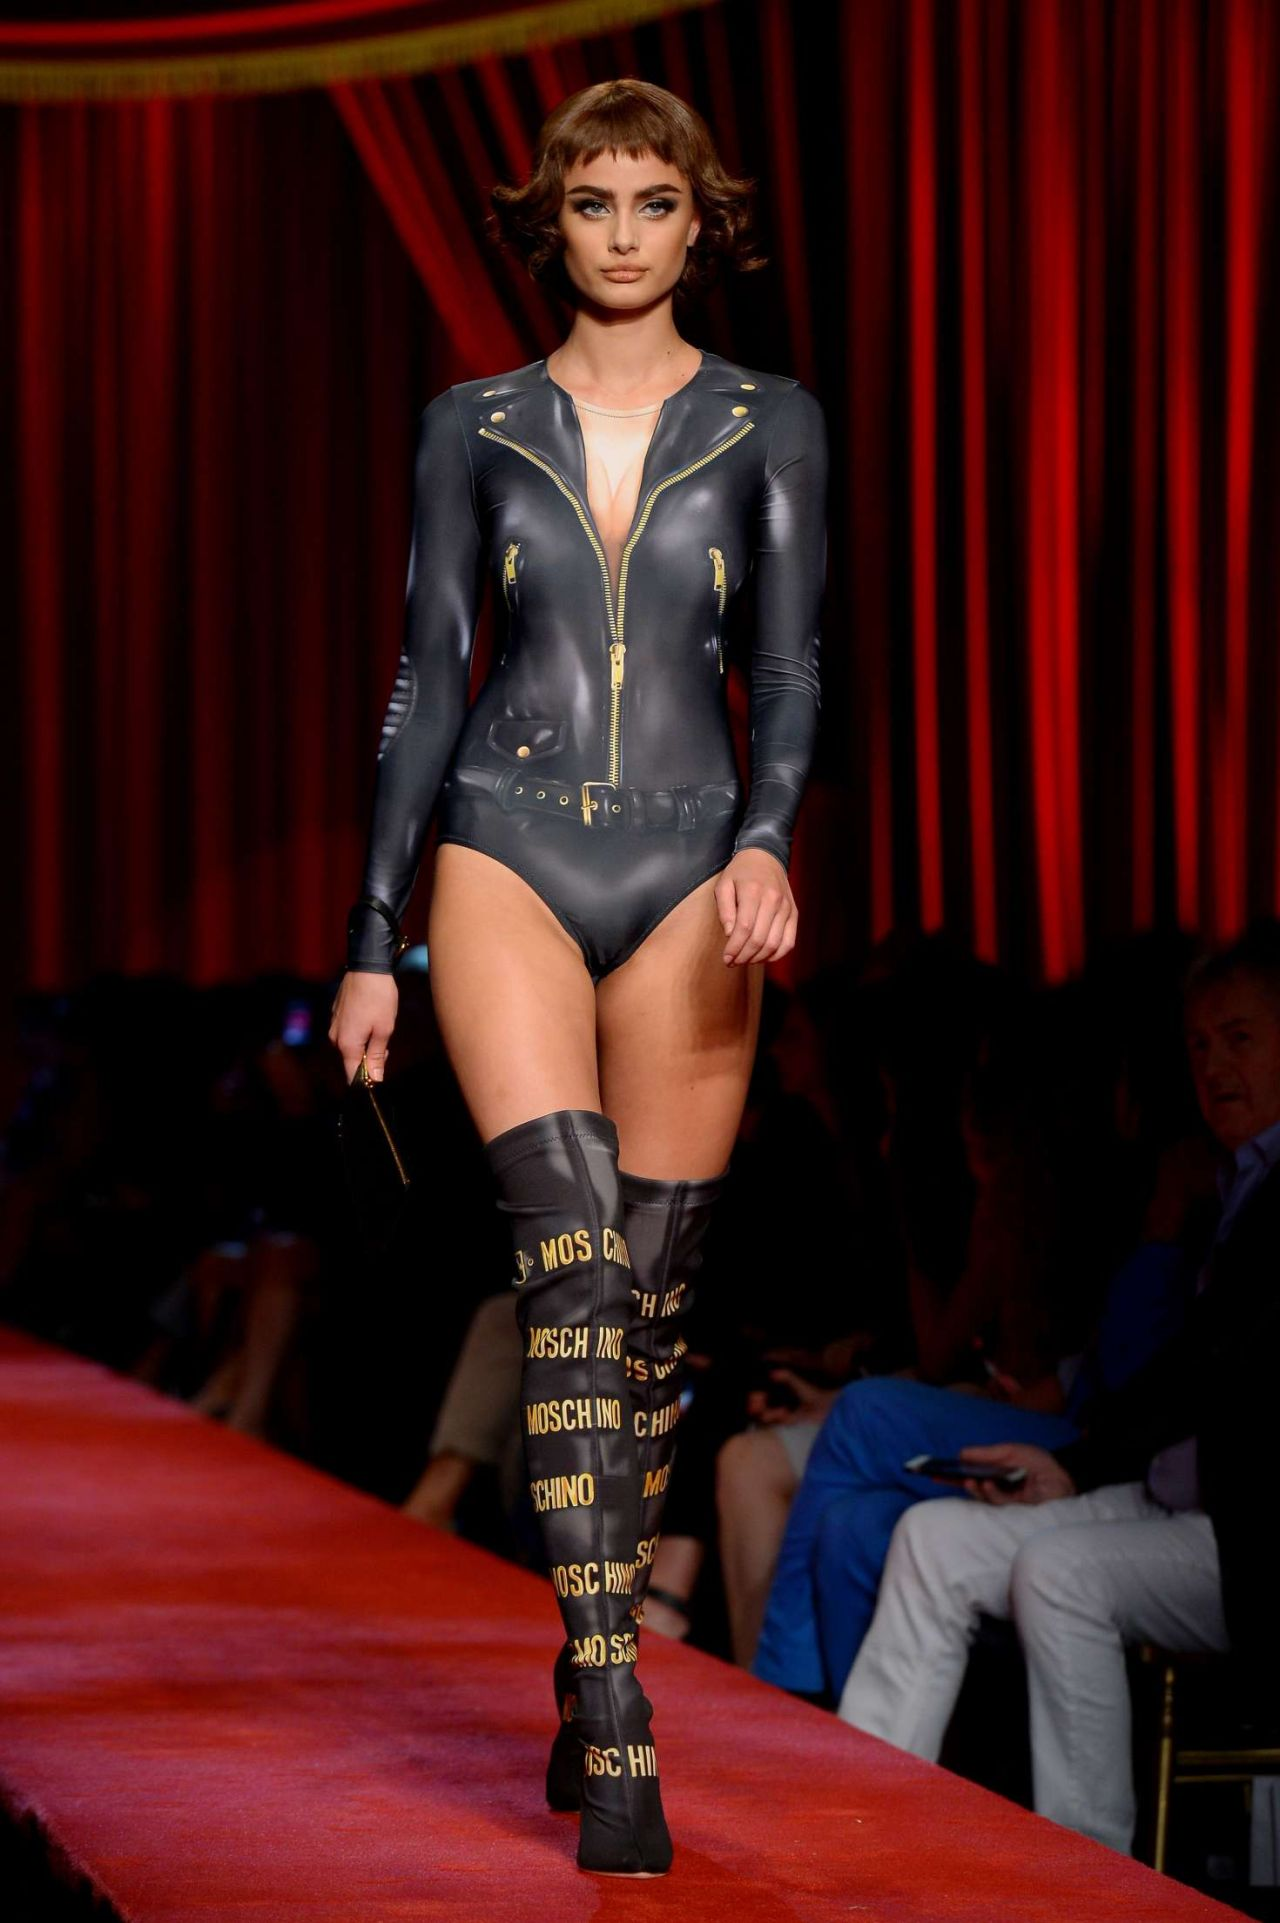 Taylor hill moschino s s 2017 show in milan september 2016 for Milan show 2016